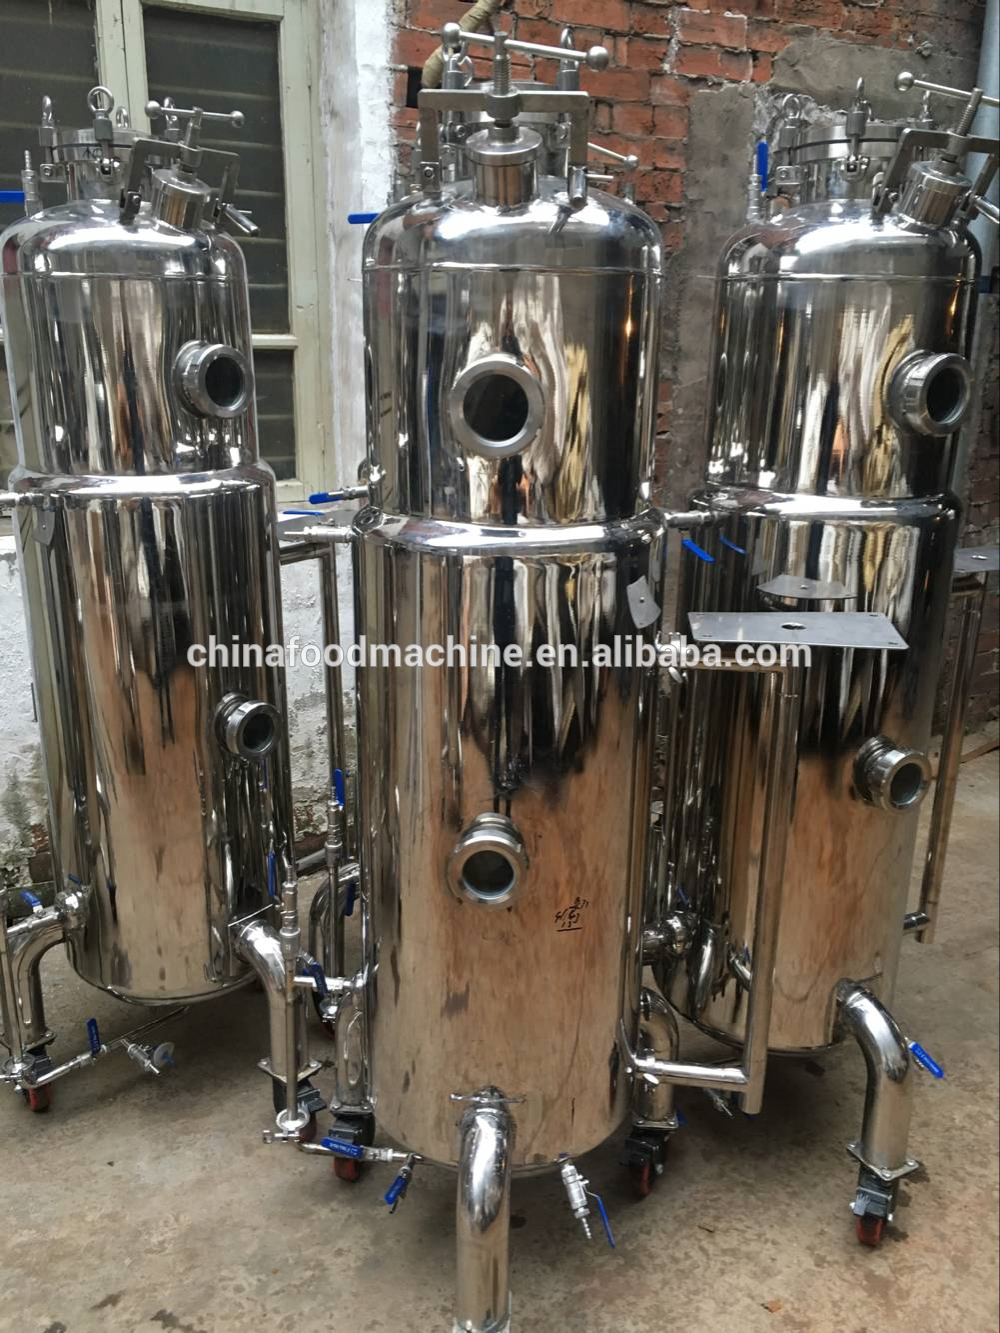 Best price of fermentation airlock